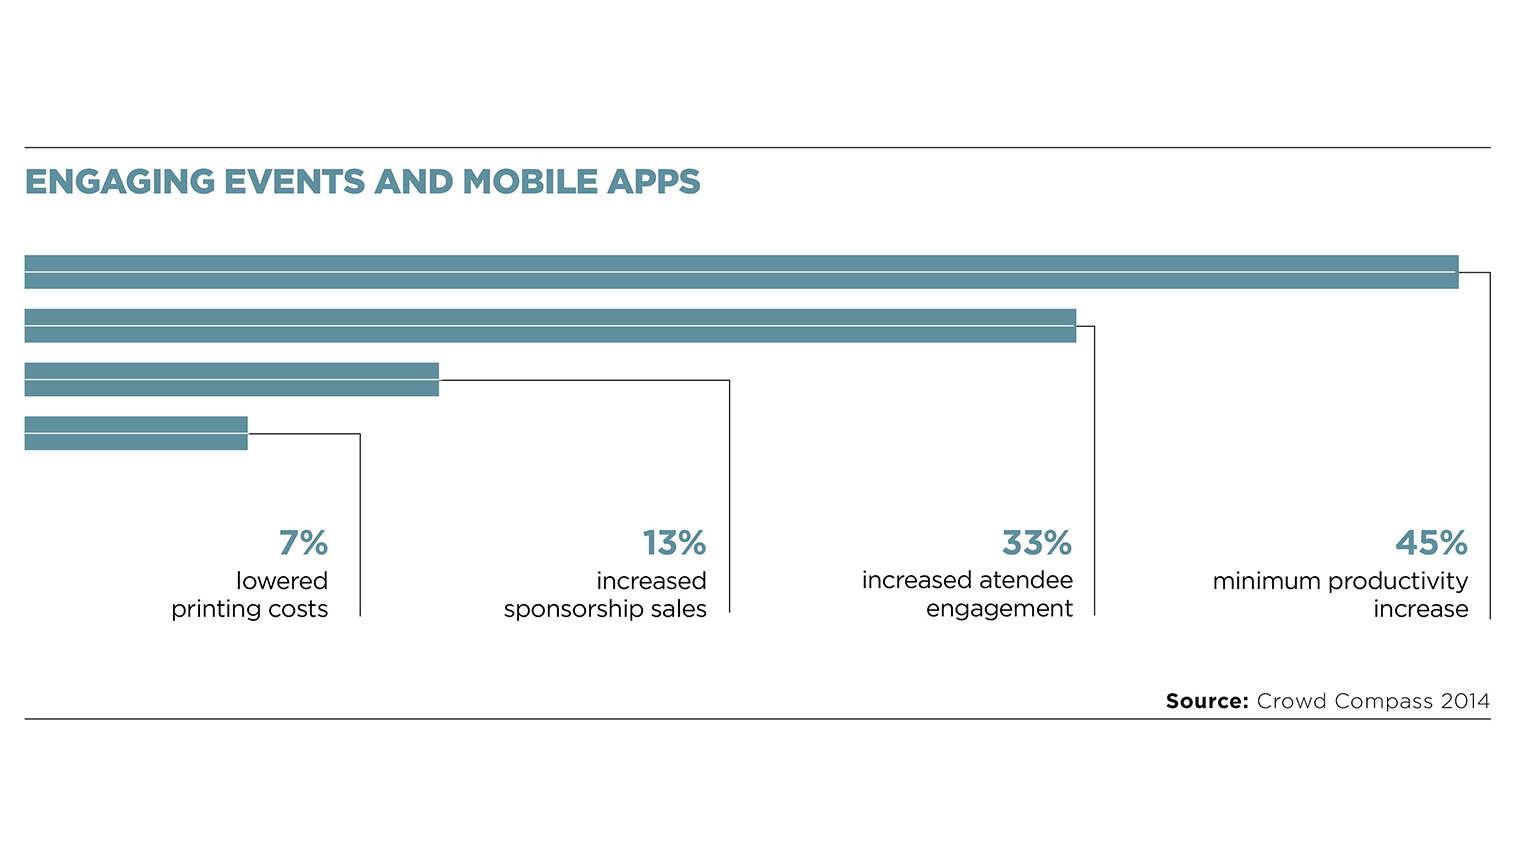 Engaging events and mobile apps